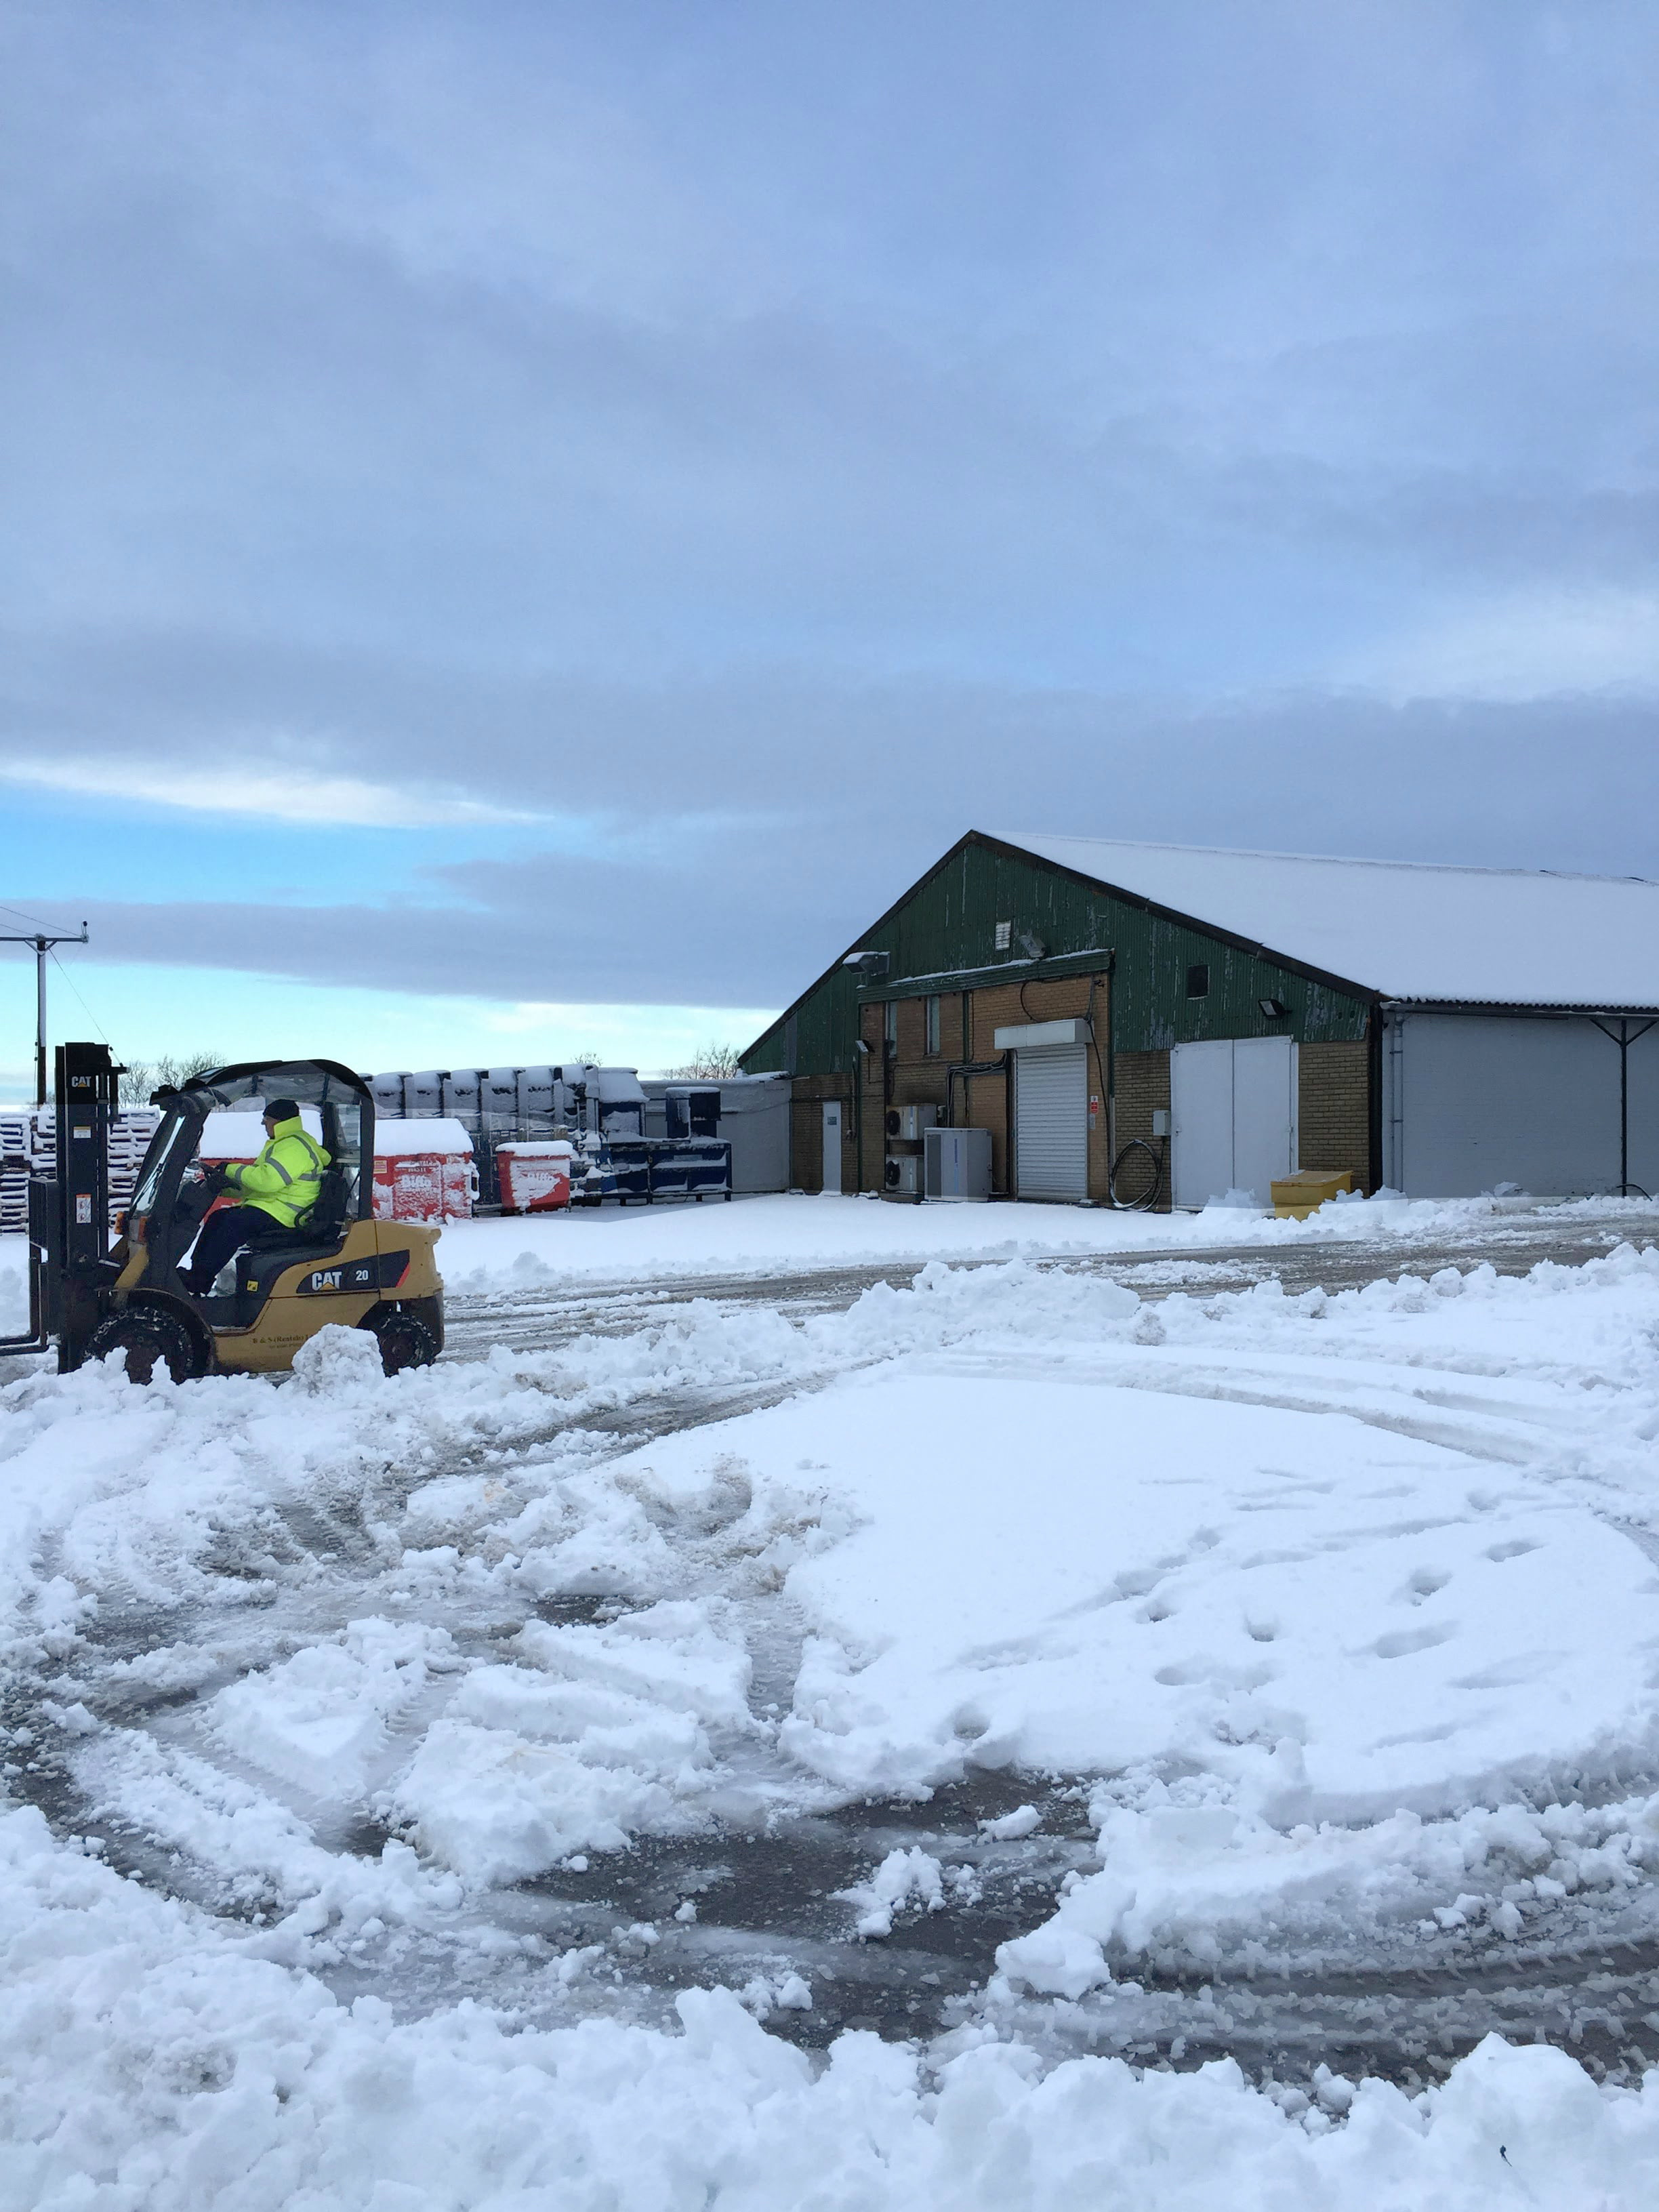 The snow plough at work in the yard